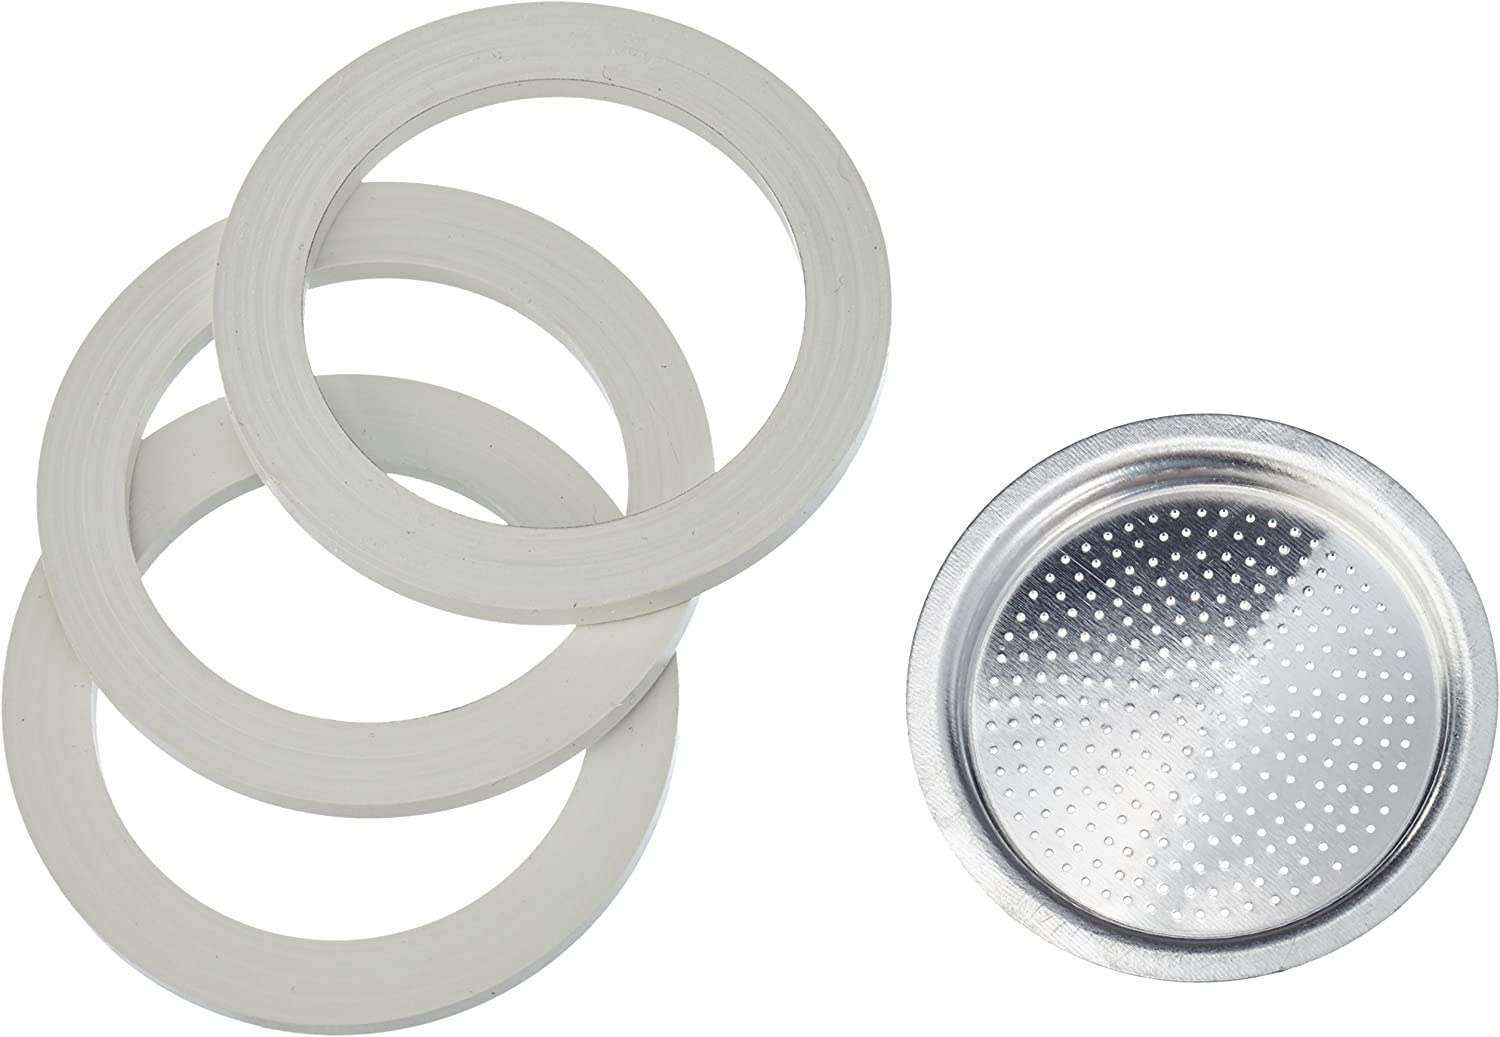 Bialetti 3 gasket and 1 alluminium filter for coffee pot 2 cups